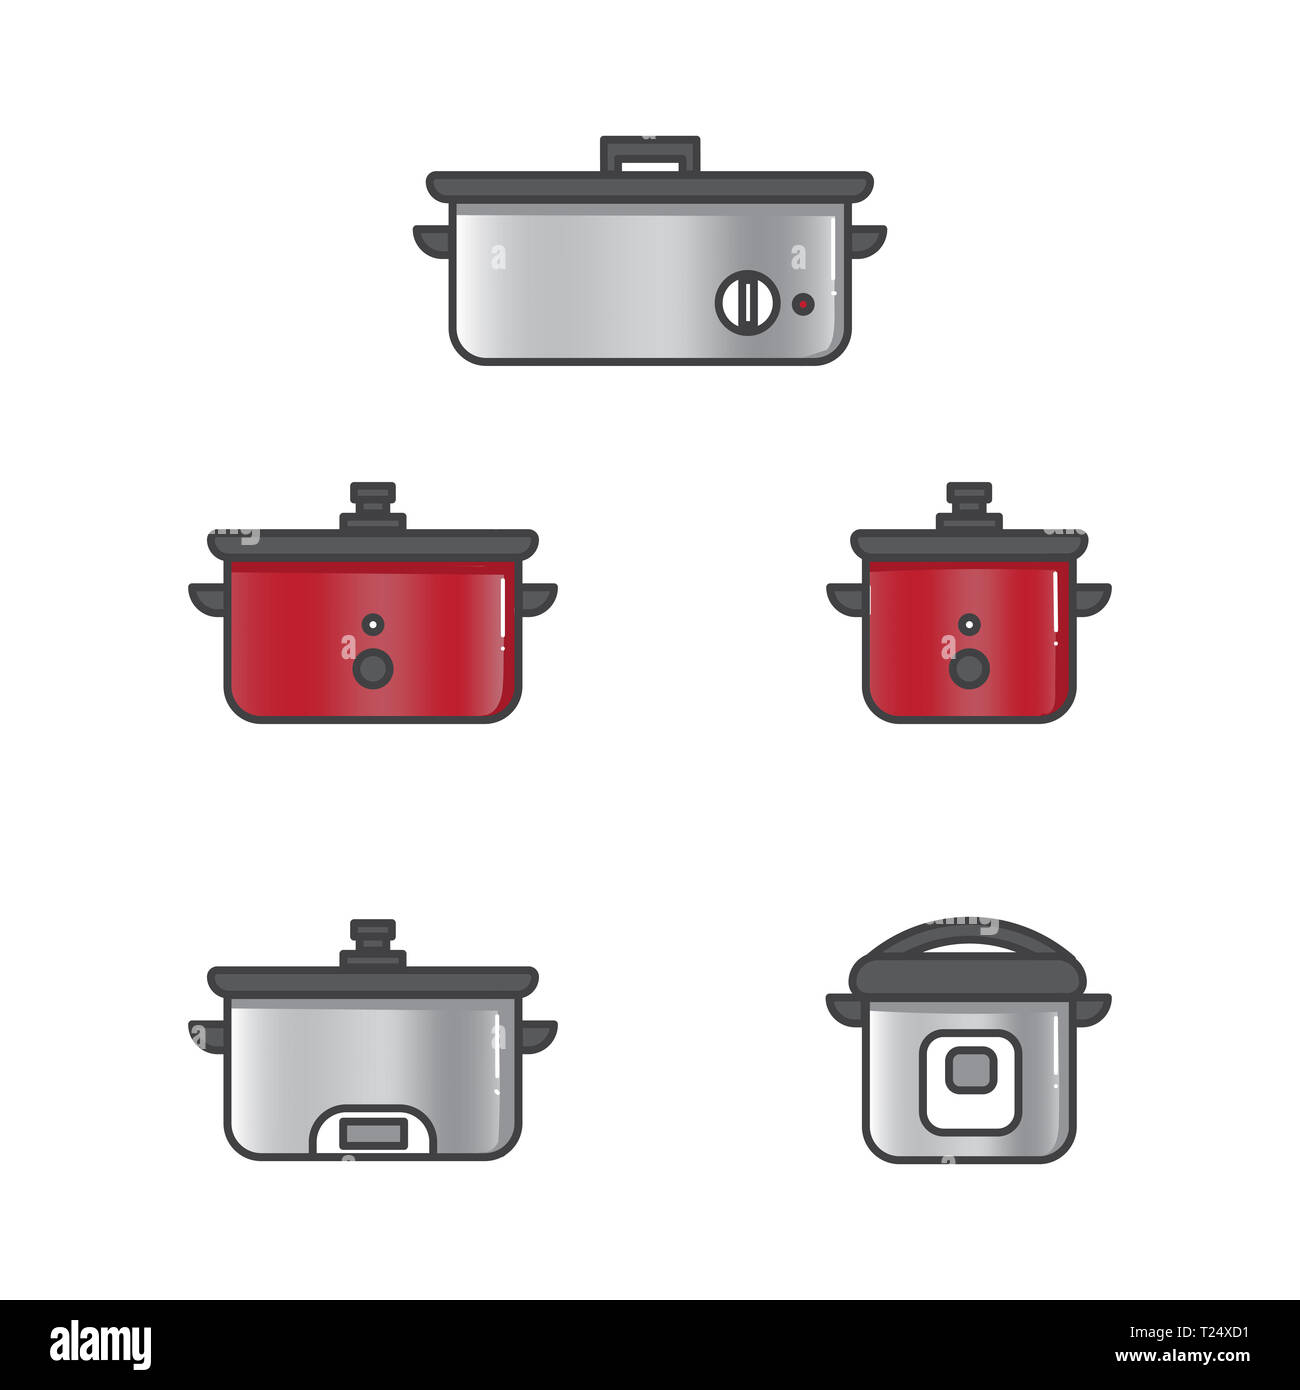 set of vector illustration slow cooker for rice and other food in kitchen preparing flat design style - Stock Image